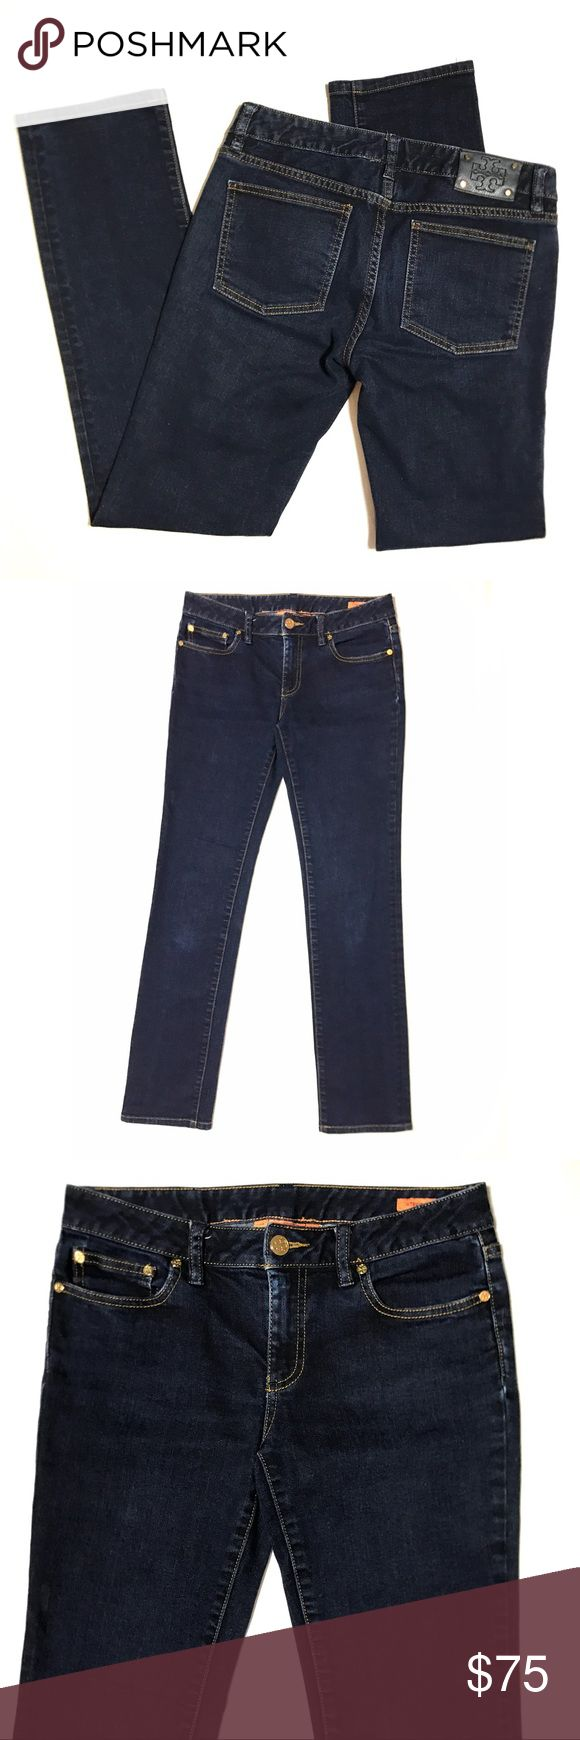 "Tory Burch Straight Leg Dark Rinse Cigarette Jeans Tory Burch SZ 27 Straight Leg Dark Rinse Indigo Wash Cigarette Denim Jeans  *Great Used Condition. Slight fading from wear and wash. Please see pictures. **Sold out online, retails for $185  Measurements: 31"" Waist 31"" Inseam 7"" Rise Tory Burch Jeans Straight Leg"